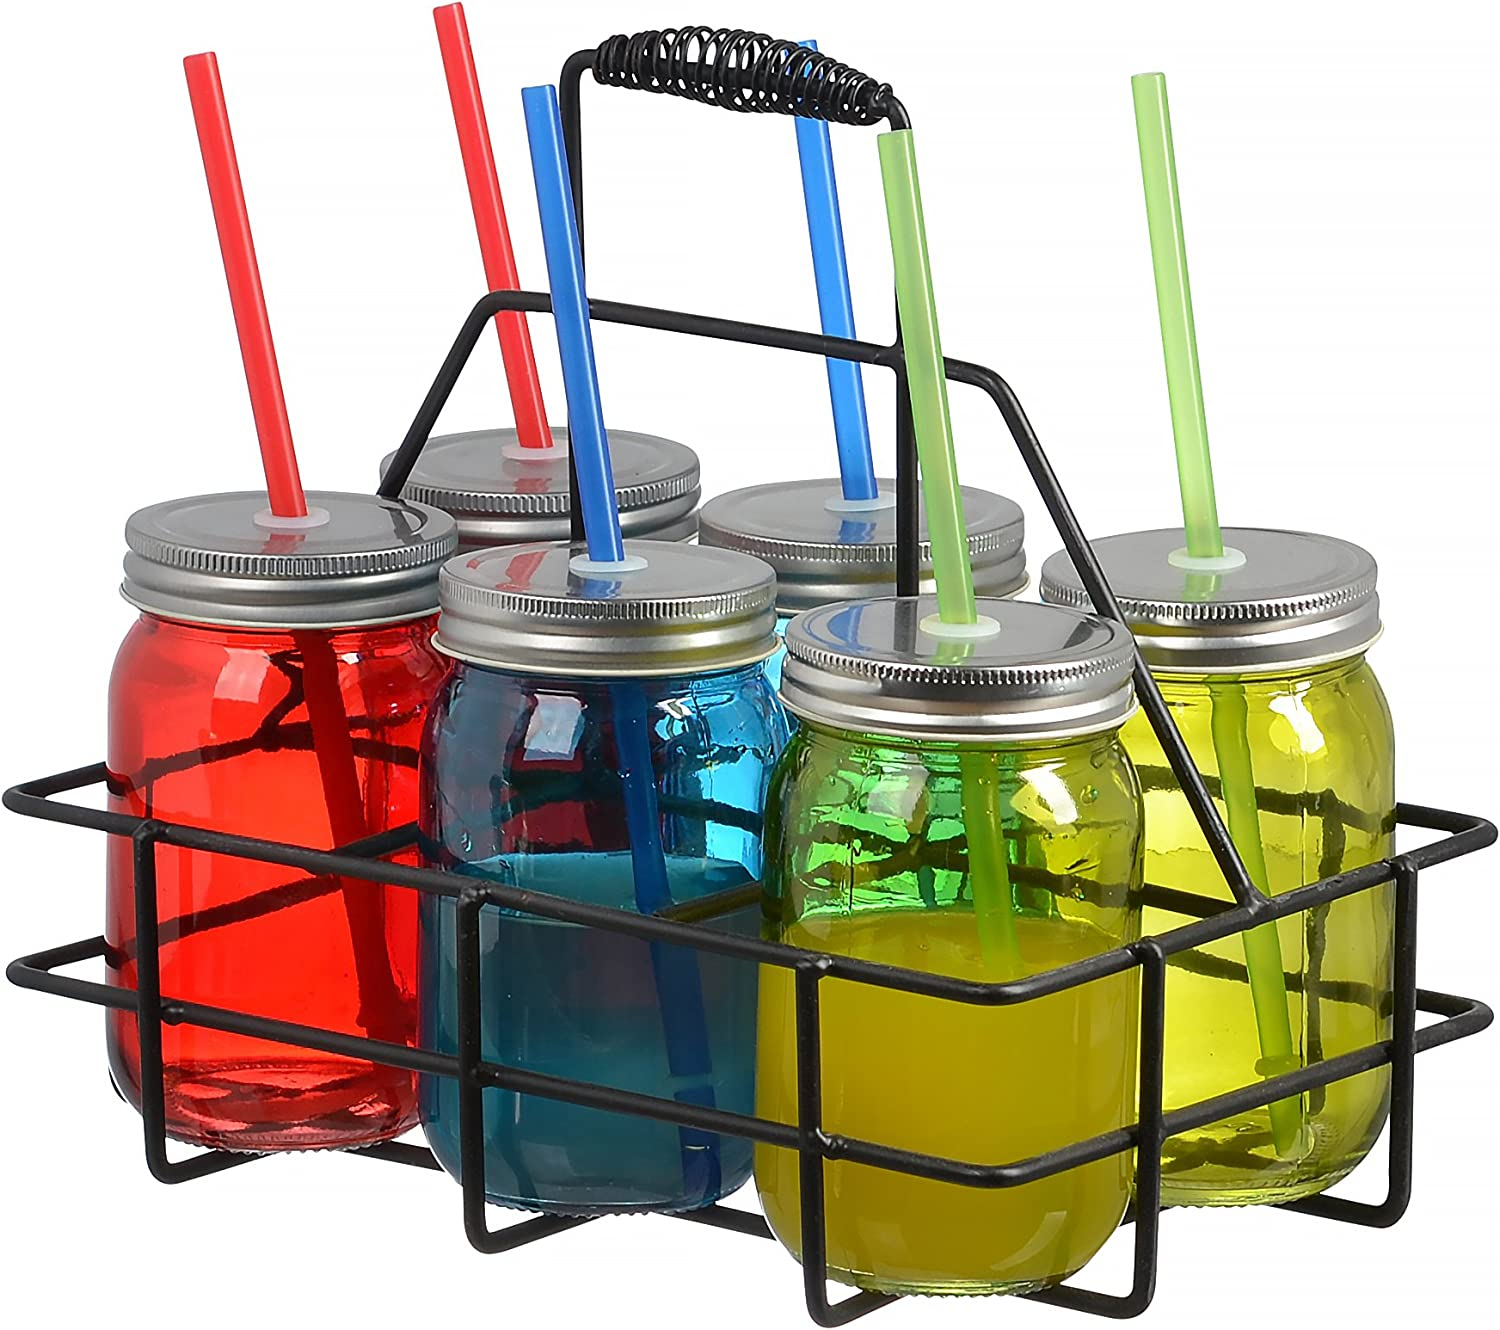 Set of 6 16oz Colored Glass Mason Jars Mugs with Handles, Lids, Drinking Straws, With Caddy Holder & Handle, Home and Party Drinkware Set, Blue Red Green Yellow Drinking Jars (6-PC Assorted Colors)